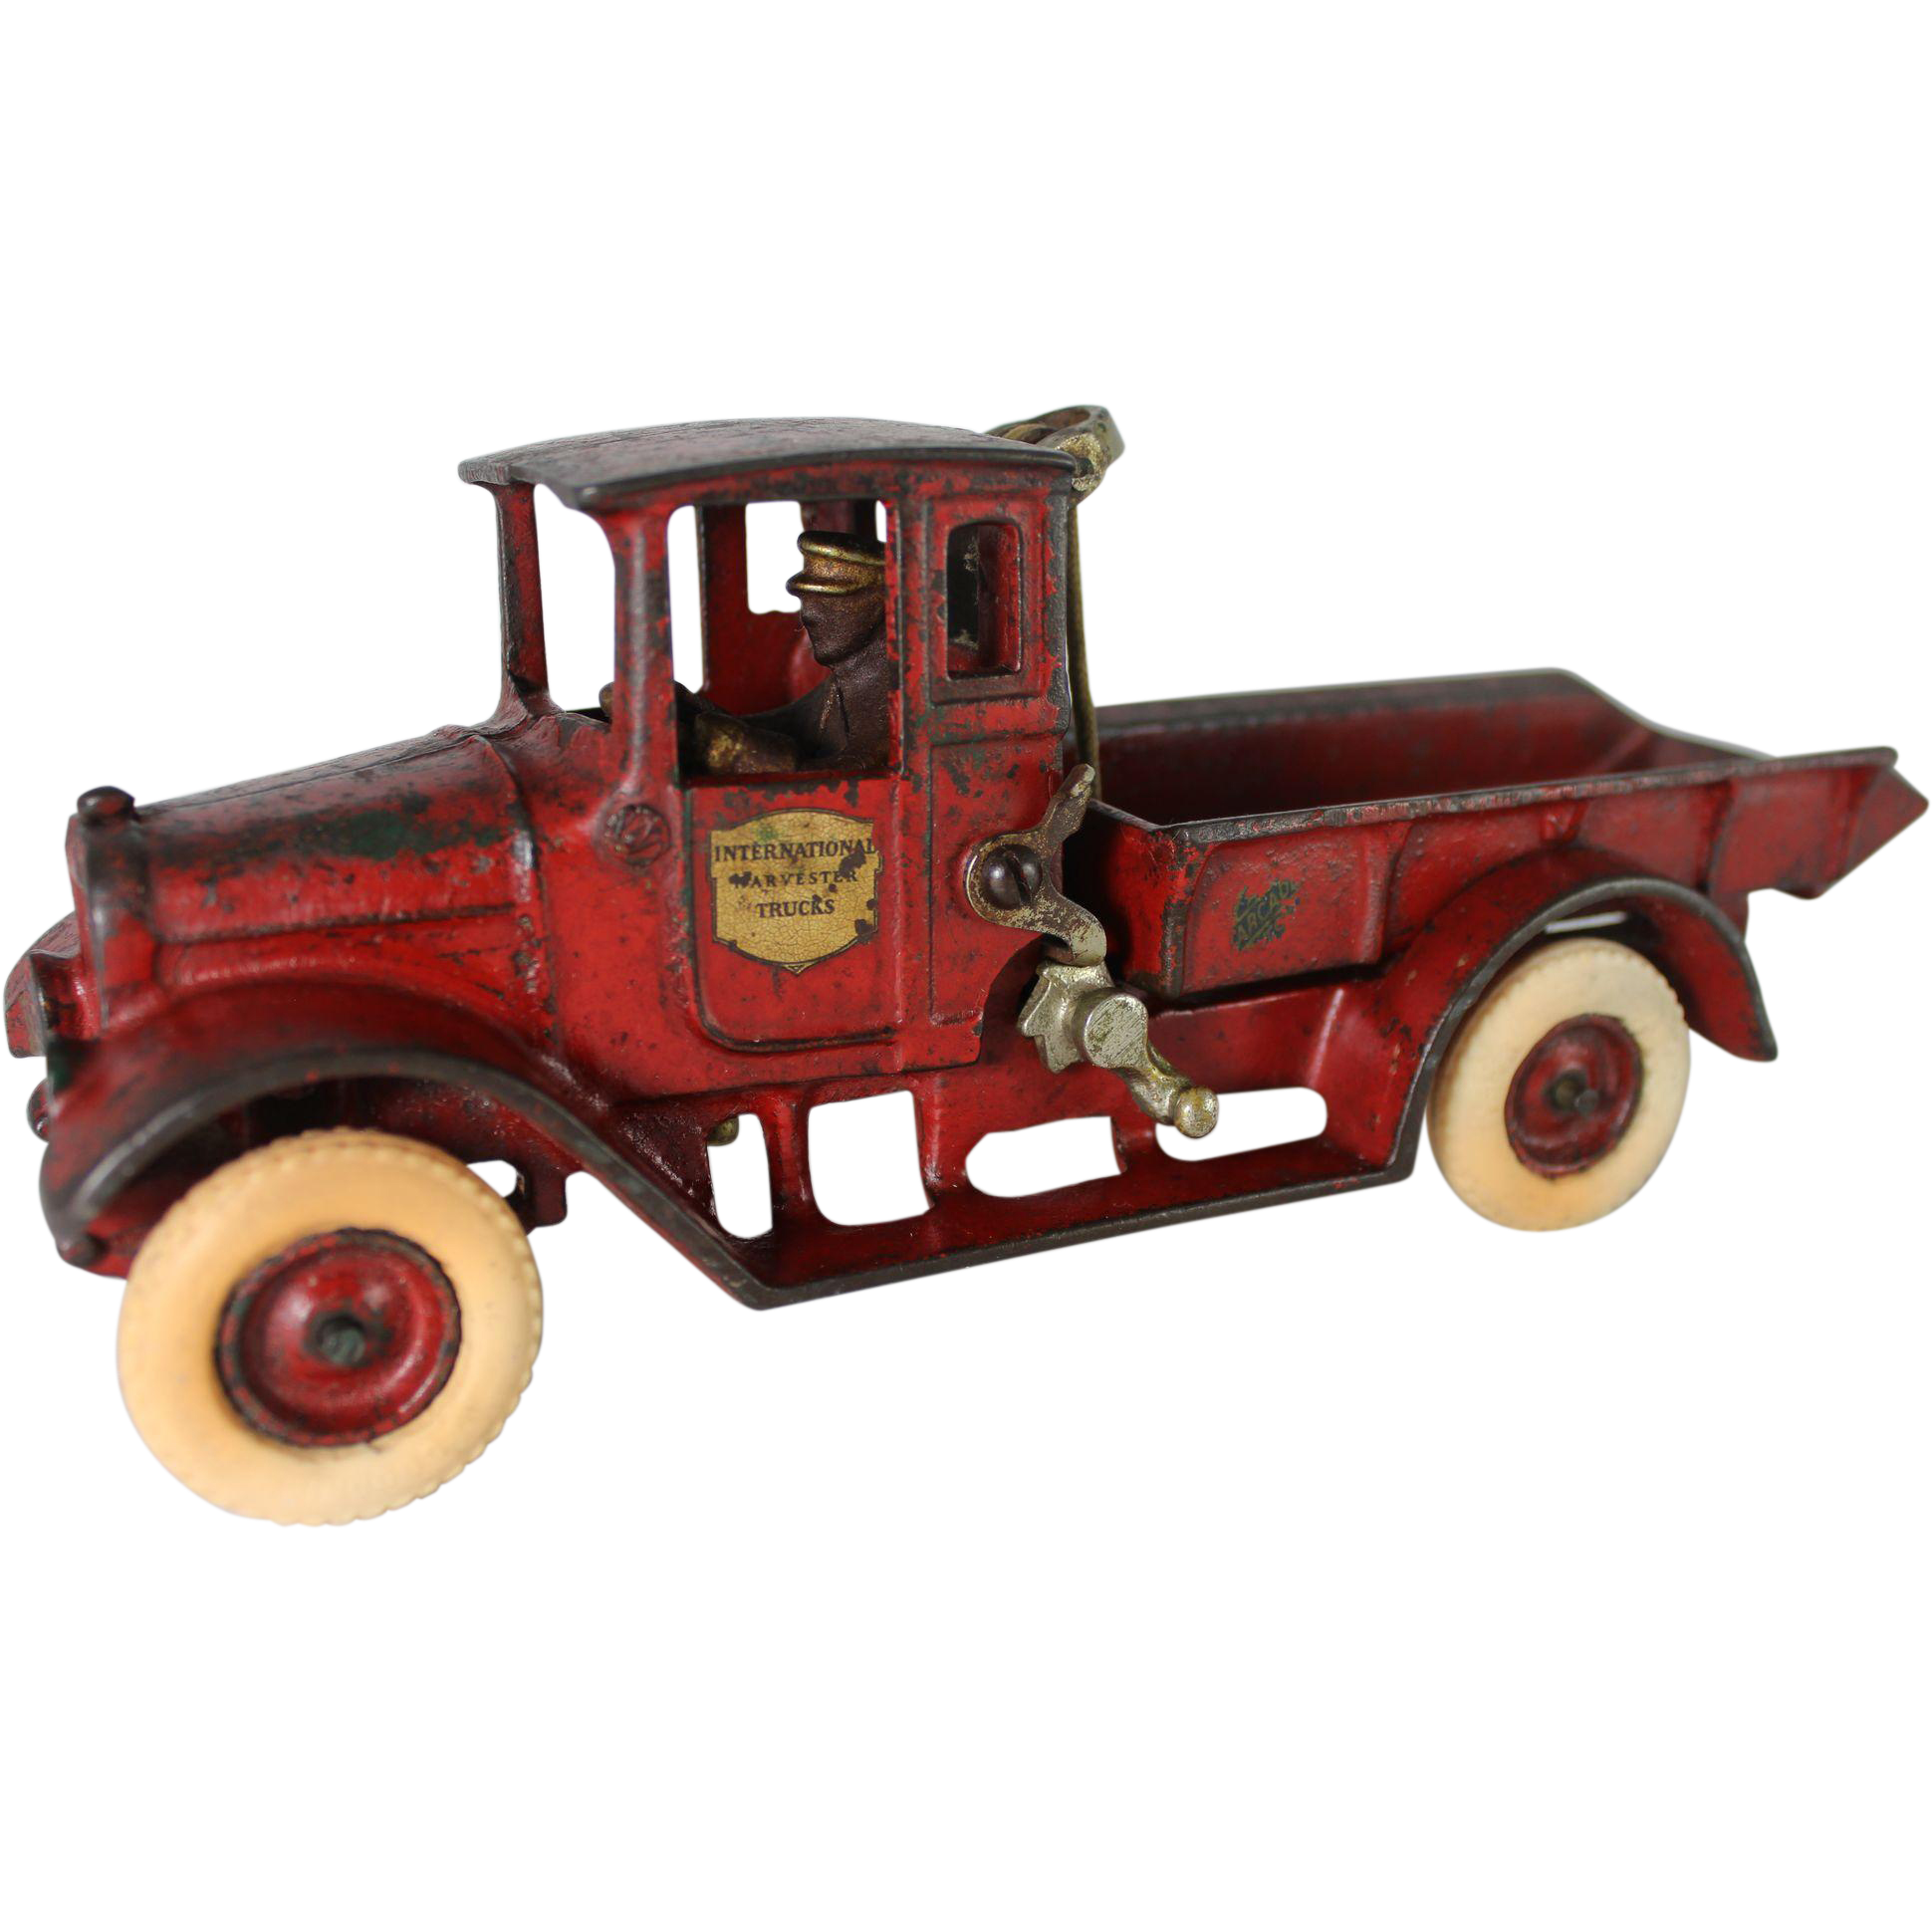 Arcade Ih Quot Red Baby Quot Dump Truck From Thecuriousamerican On